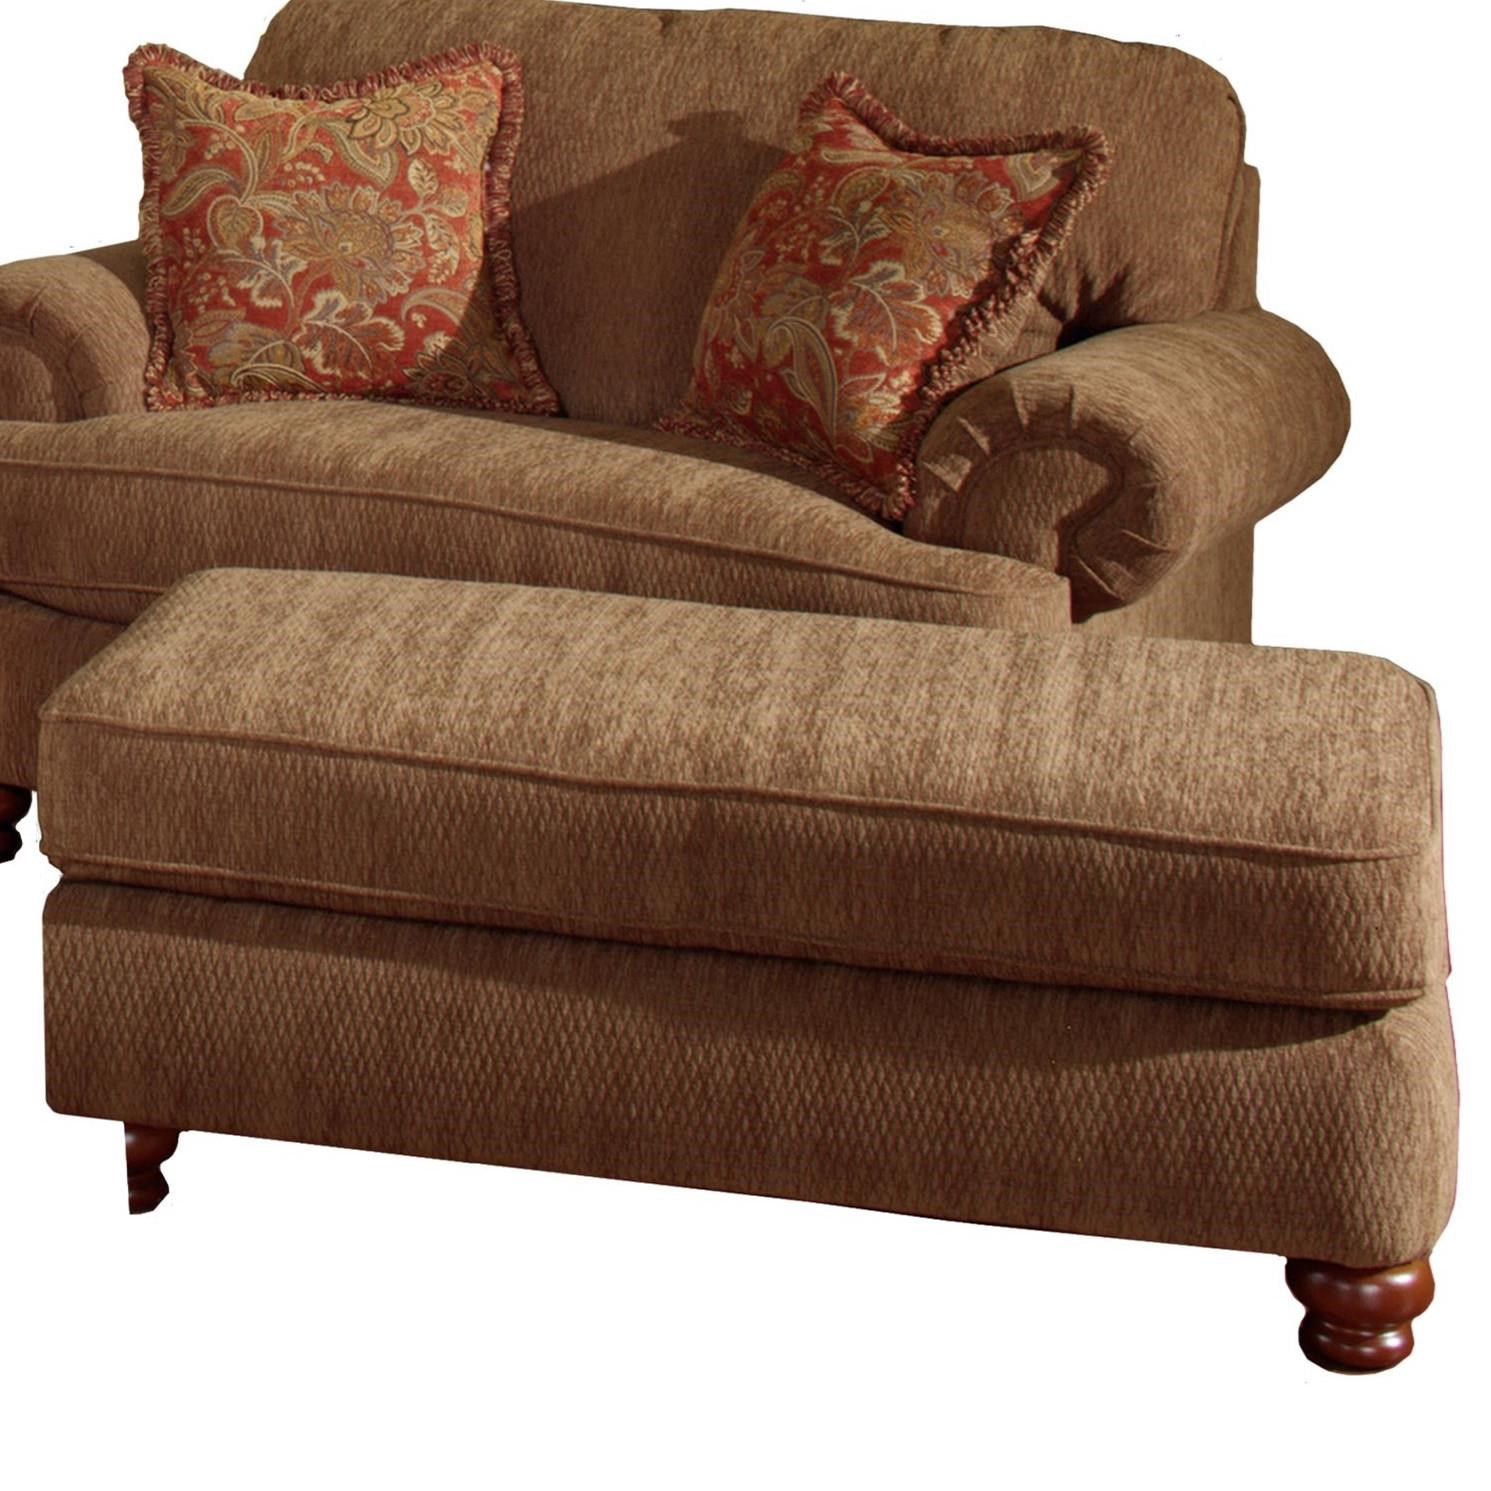 Jackson Furniture Belmont Ottoman - Item Number: 4347-10